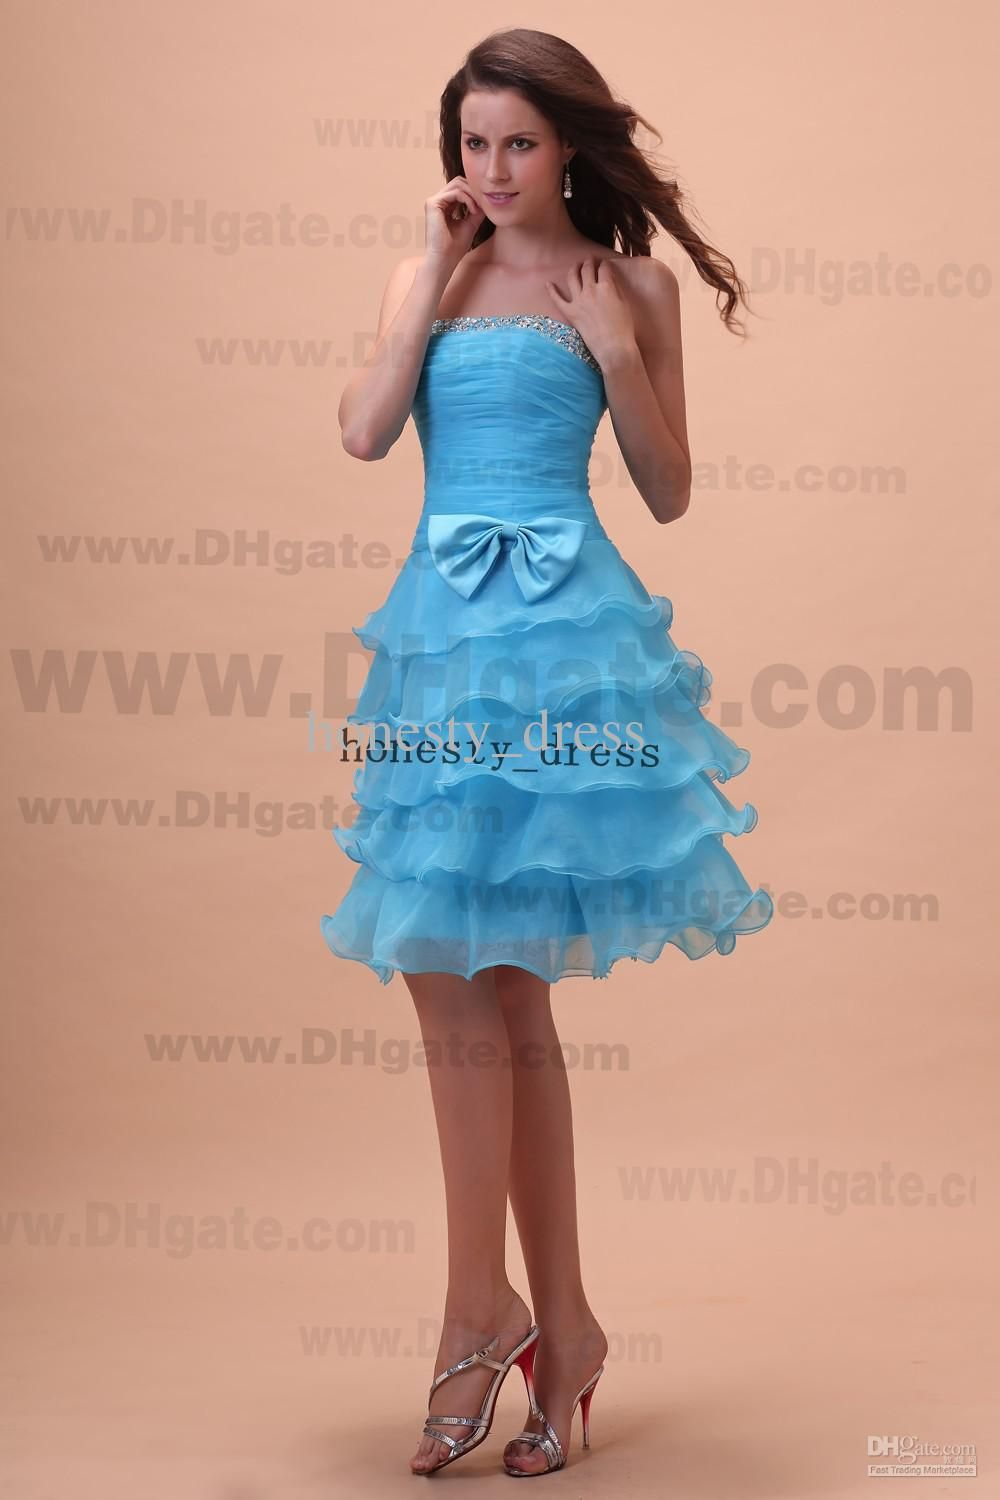 Sassy light blue a line organza junior bridesmaid dress strapless sassy light blue a line organza junior bridesmaid dress strapless knee length beaded sequin tiered the honor of bridemaids gowns ombrellifo Gallery